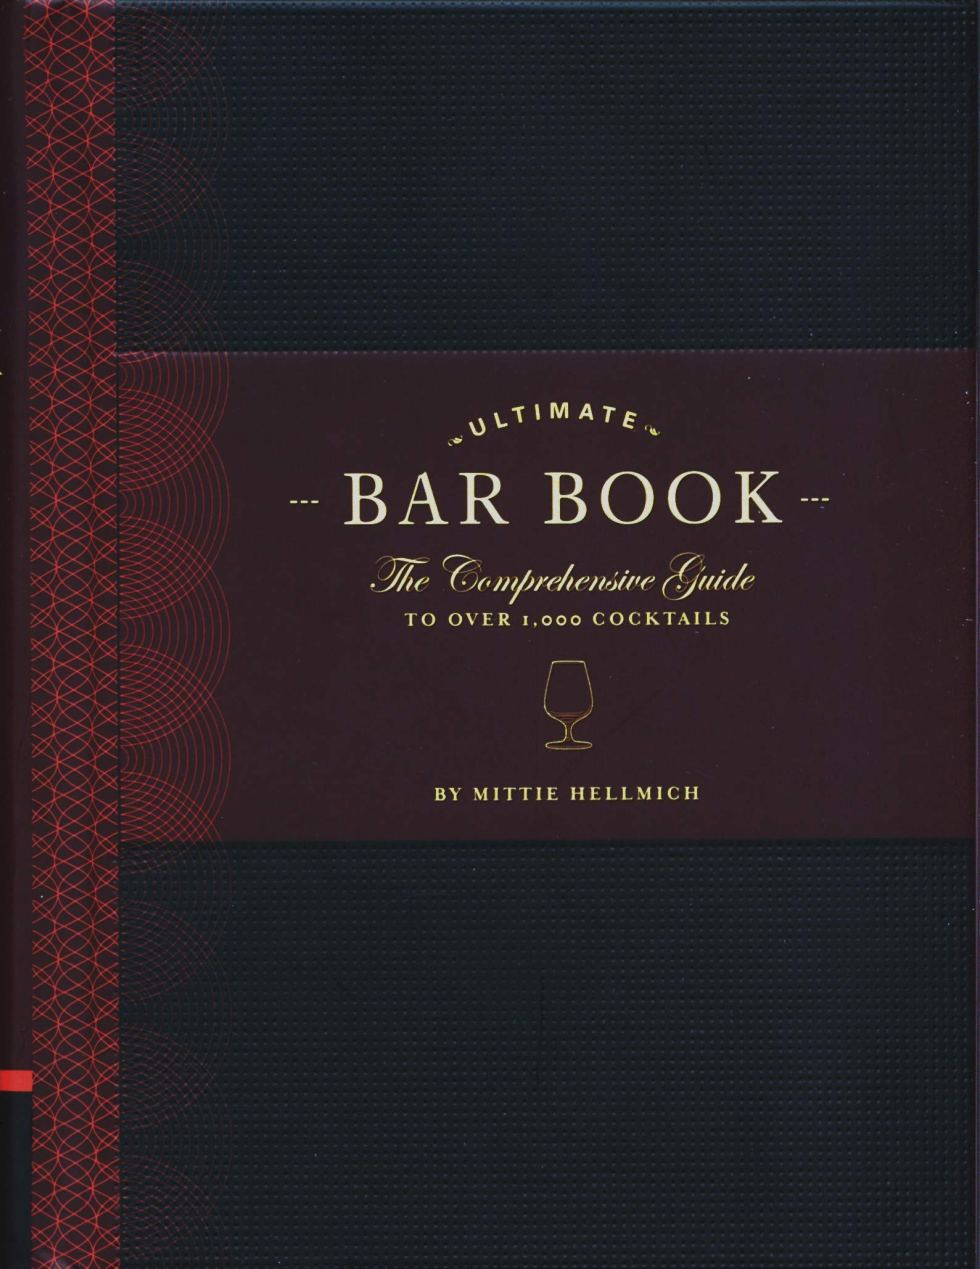 Ultimate Bar Book cocktail gifts